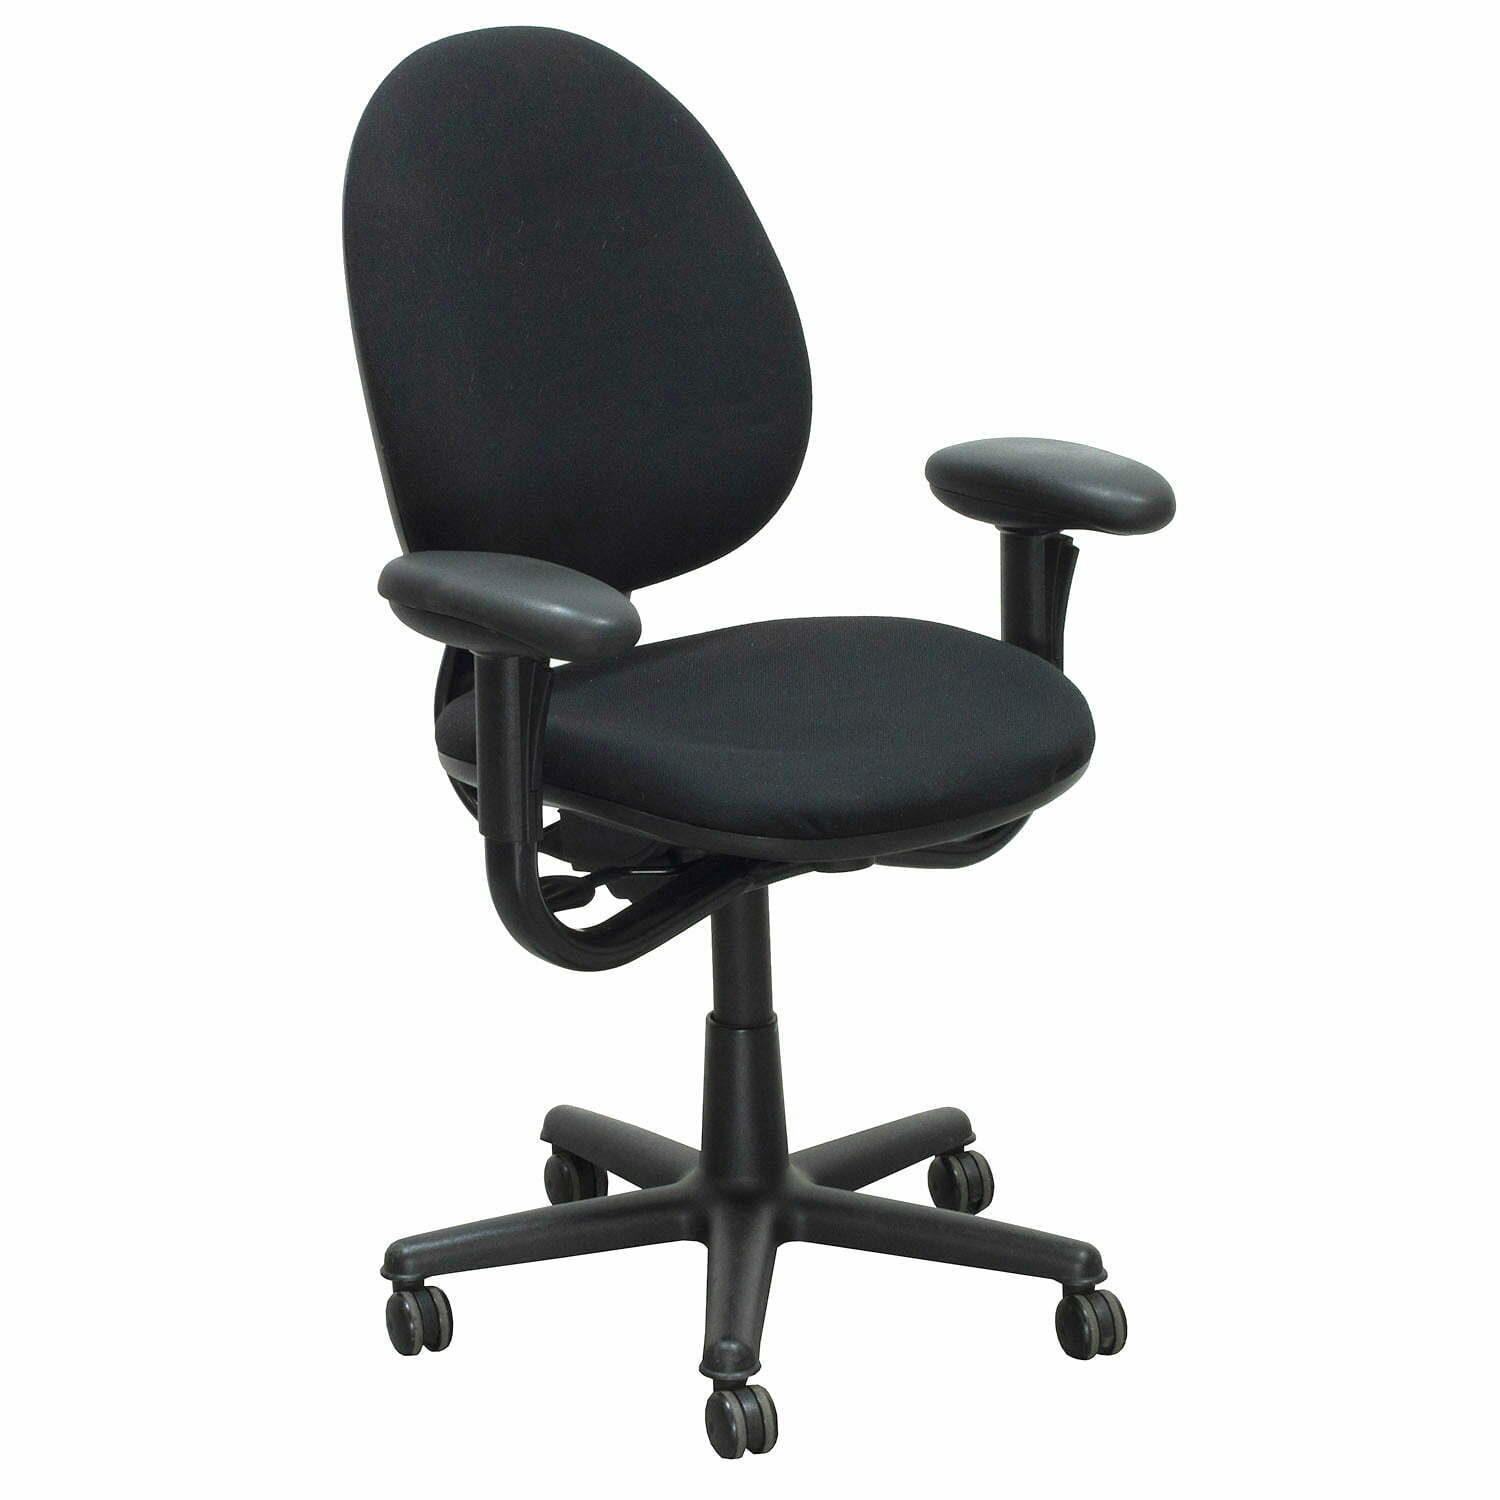 Steelcase Chairs Steelcase Criterion Office Chair Unisource Office